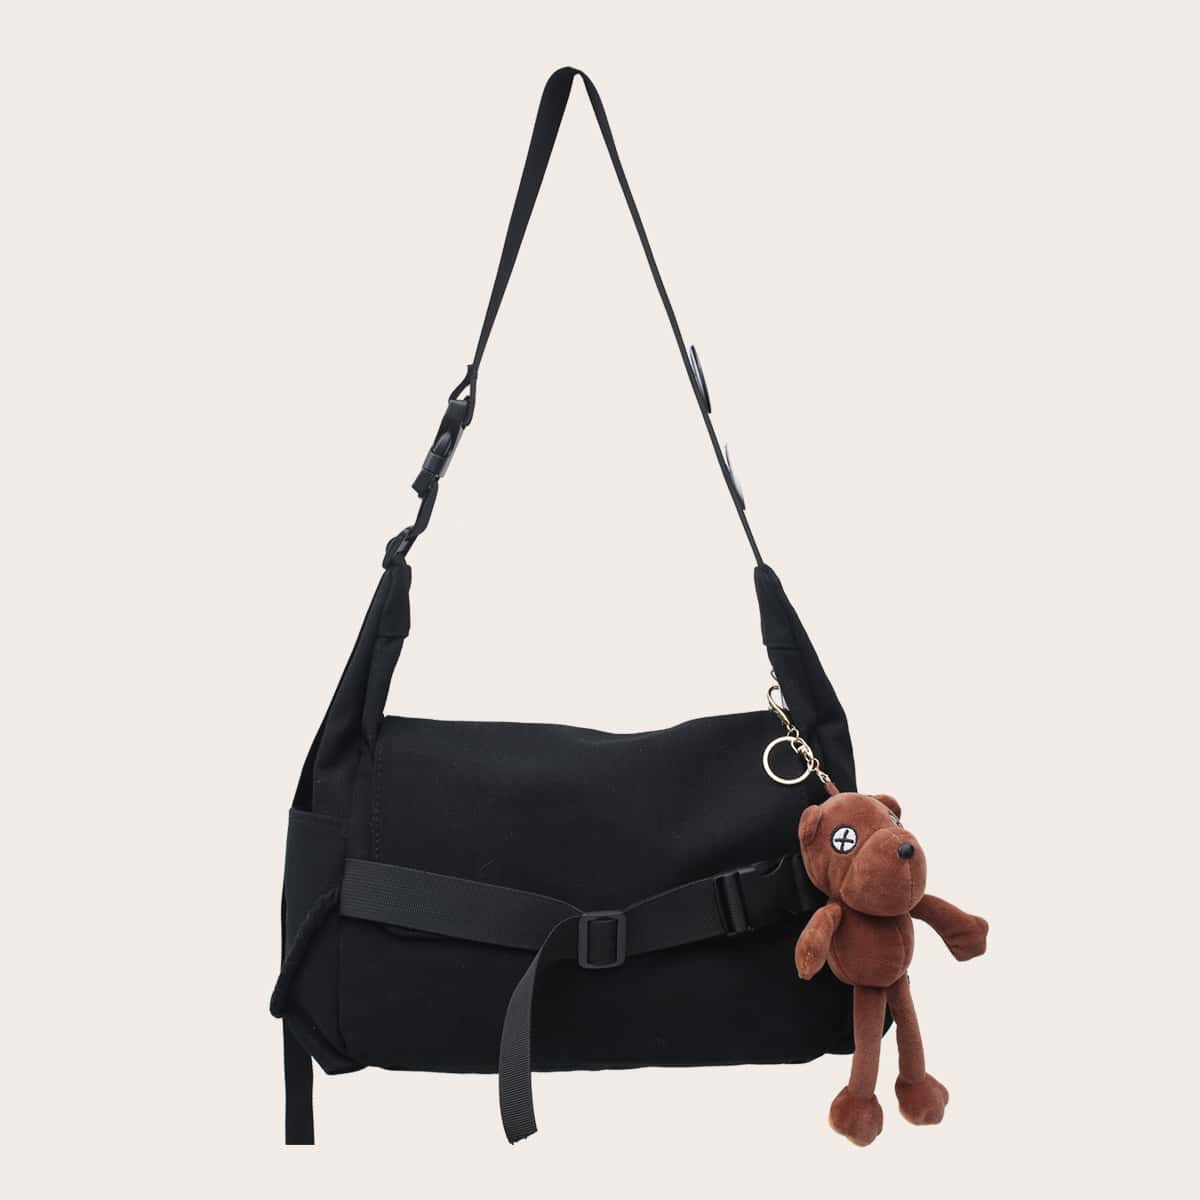 shein Mannen Cartoon Charm Crossbody Tas